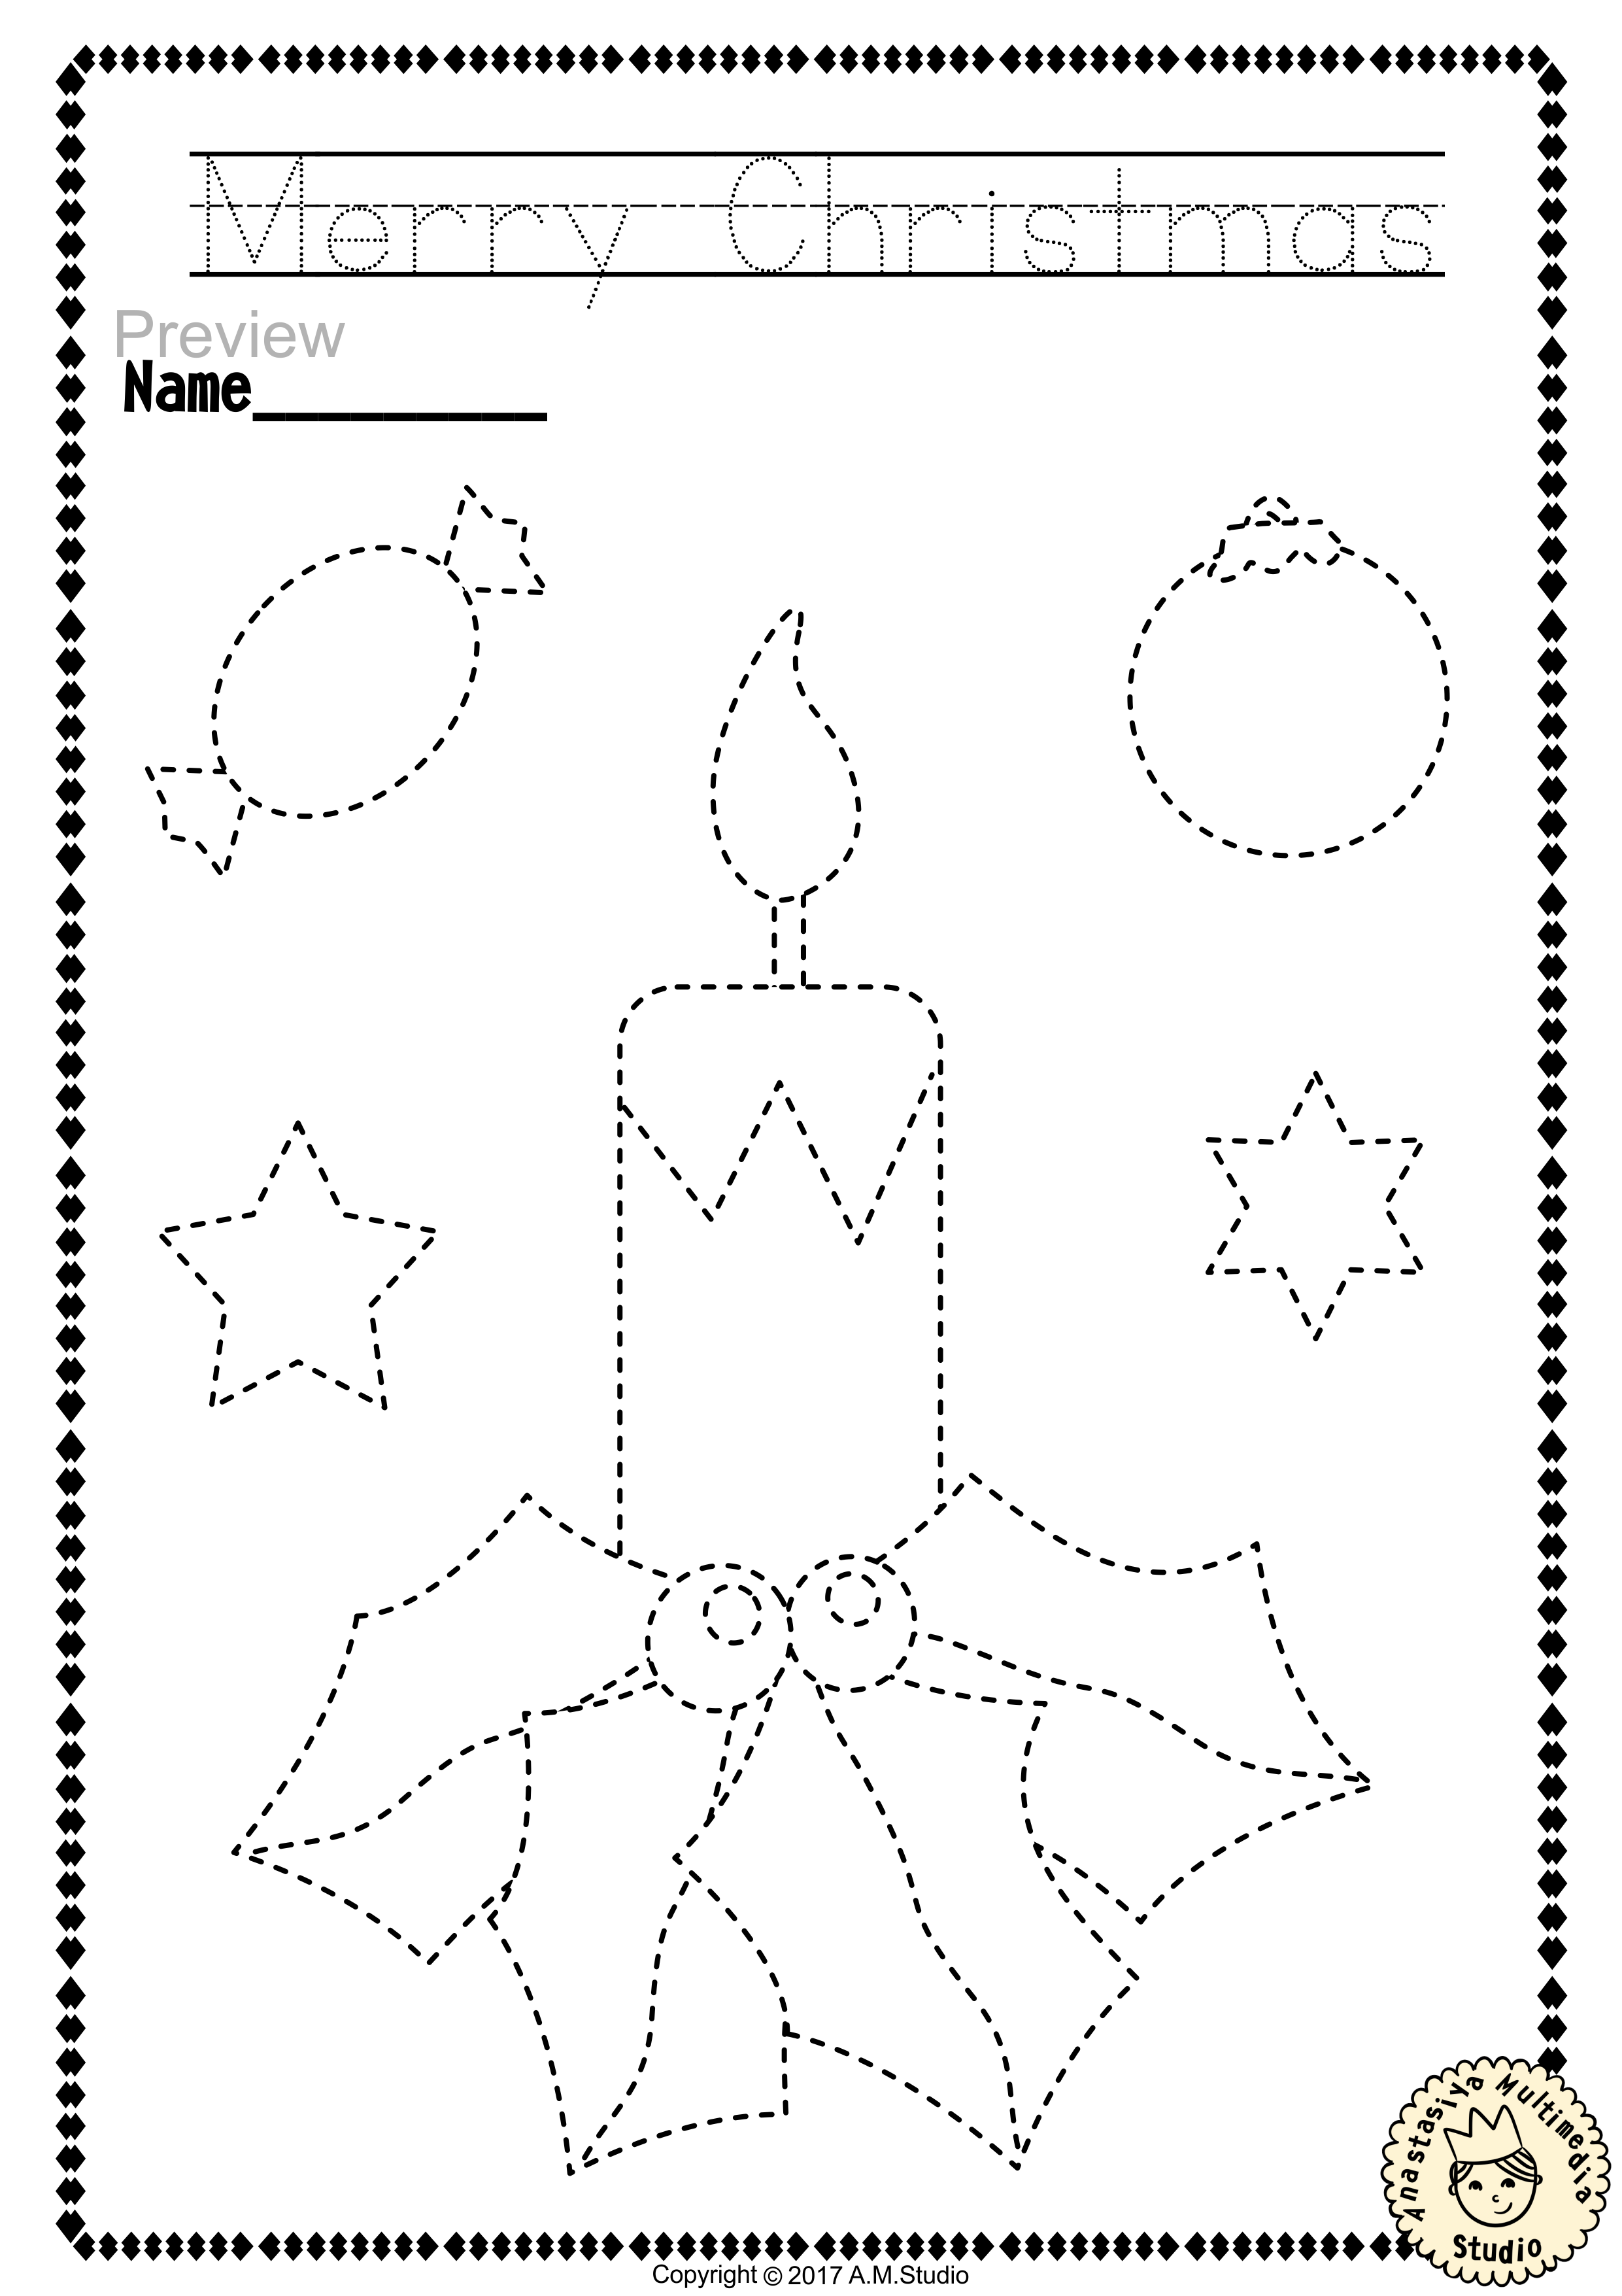 worksheet Tracing And Colouring Worksheets christmas trace and color pages fine motor skills pre writing writing